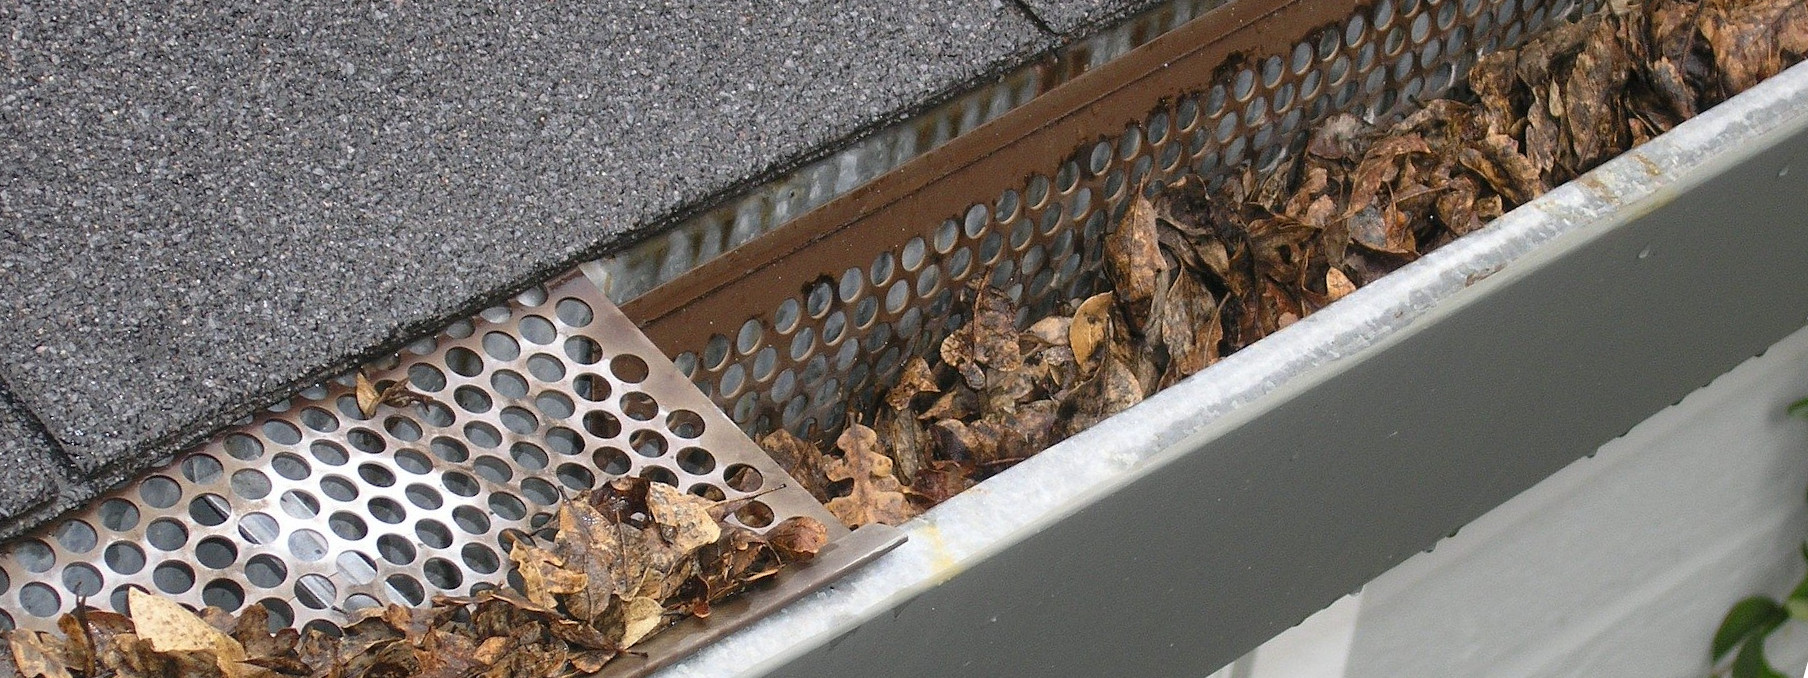 Gutter guard repair